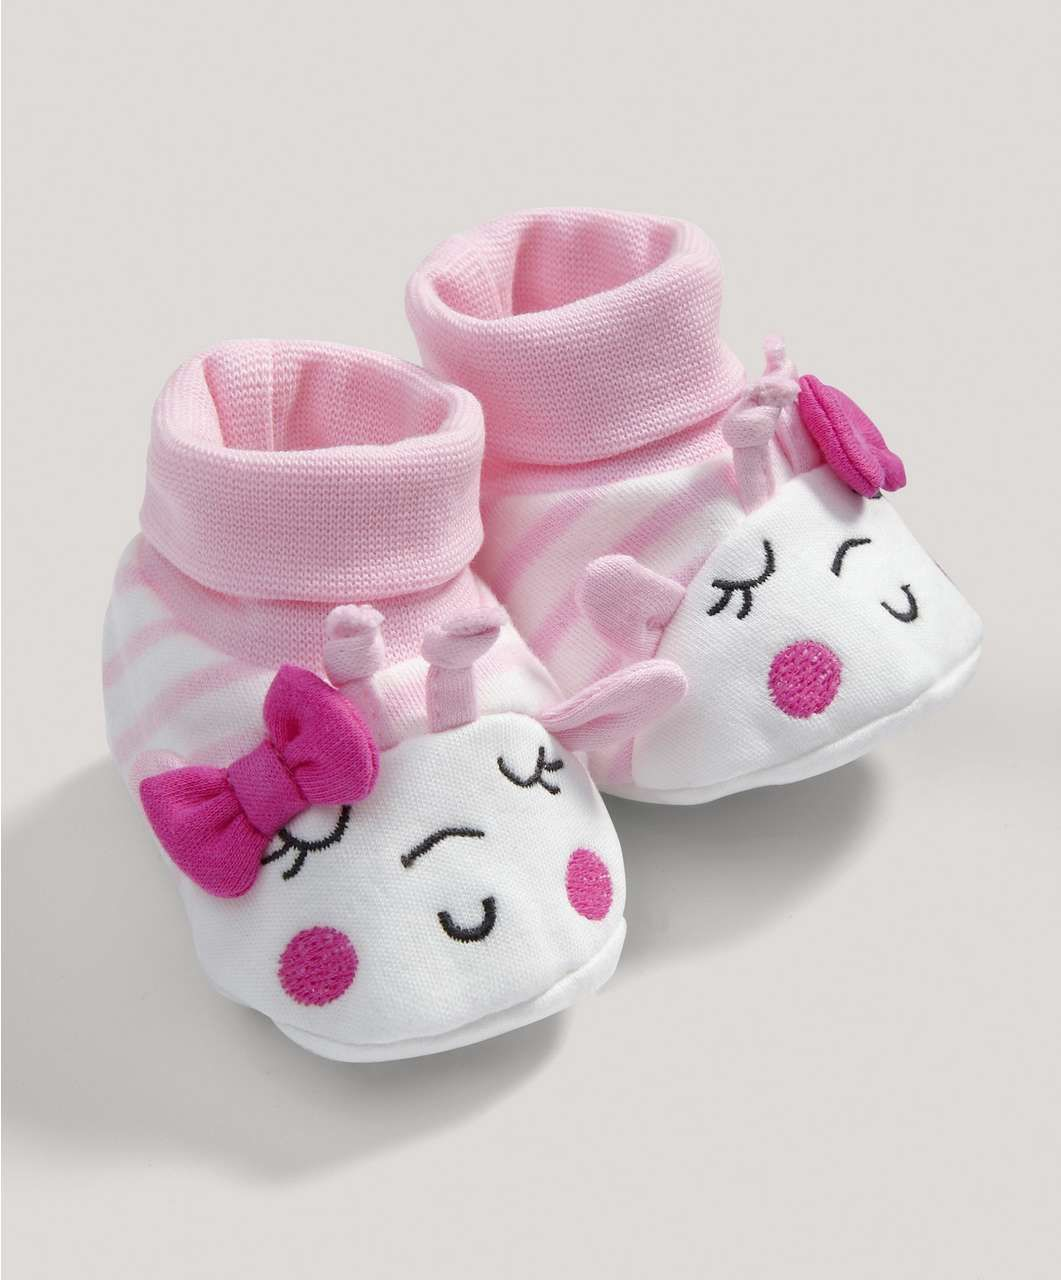 http://www.mamasandpapas.com/product-girls-cute-graphic-bootees/s0012698/type-s/